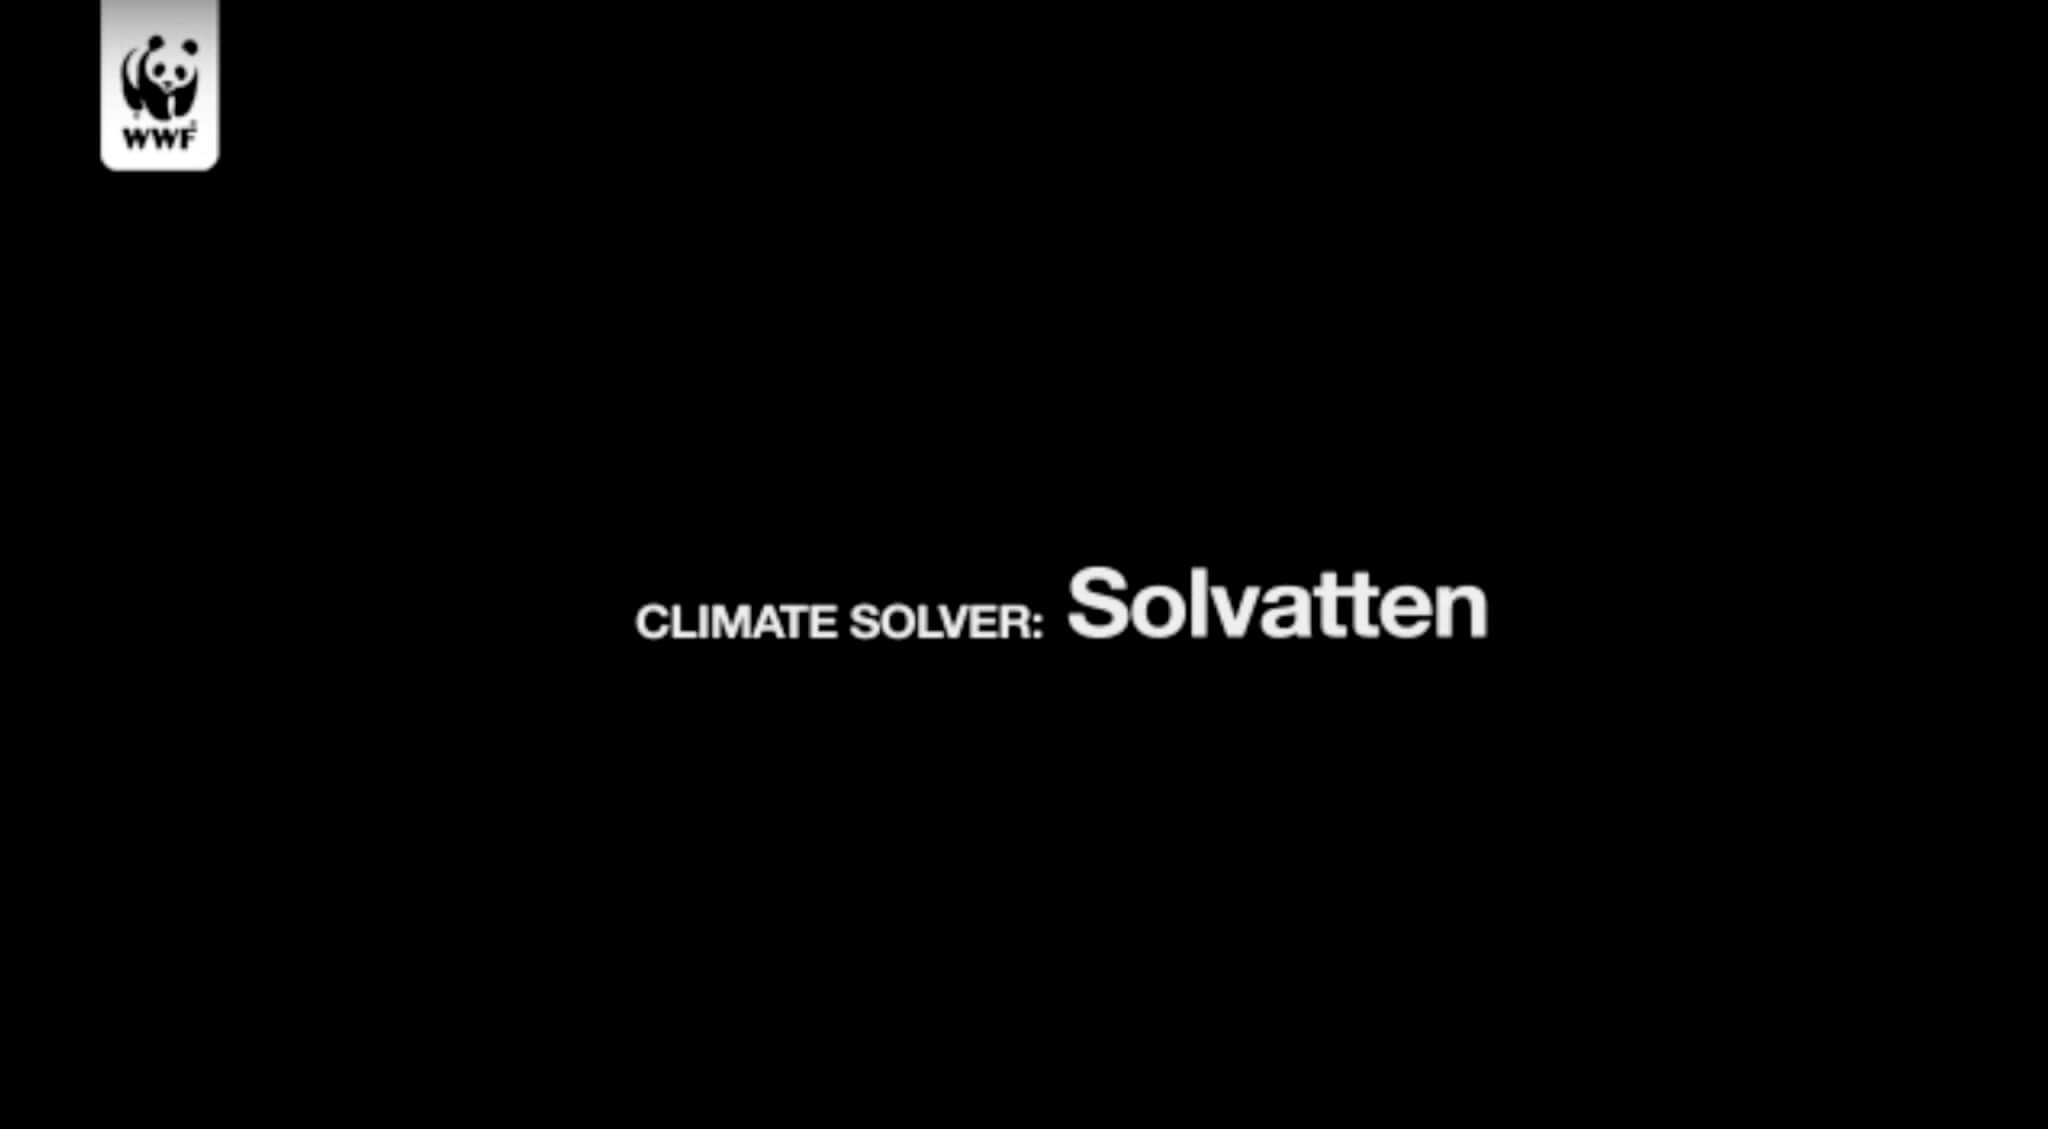 Solving Climate issues with Solvatten